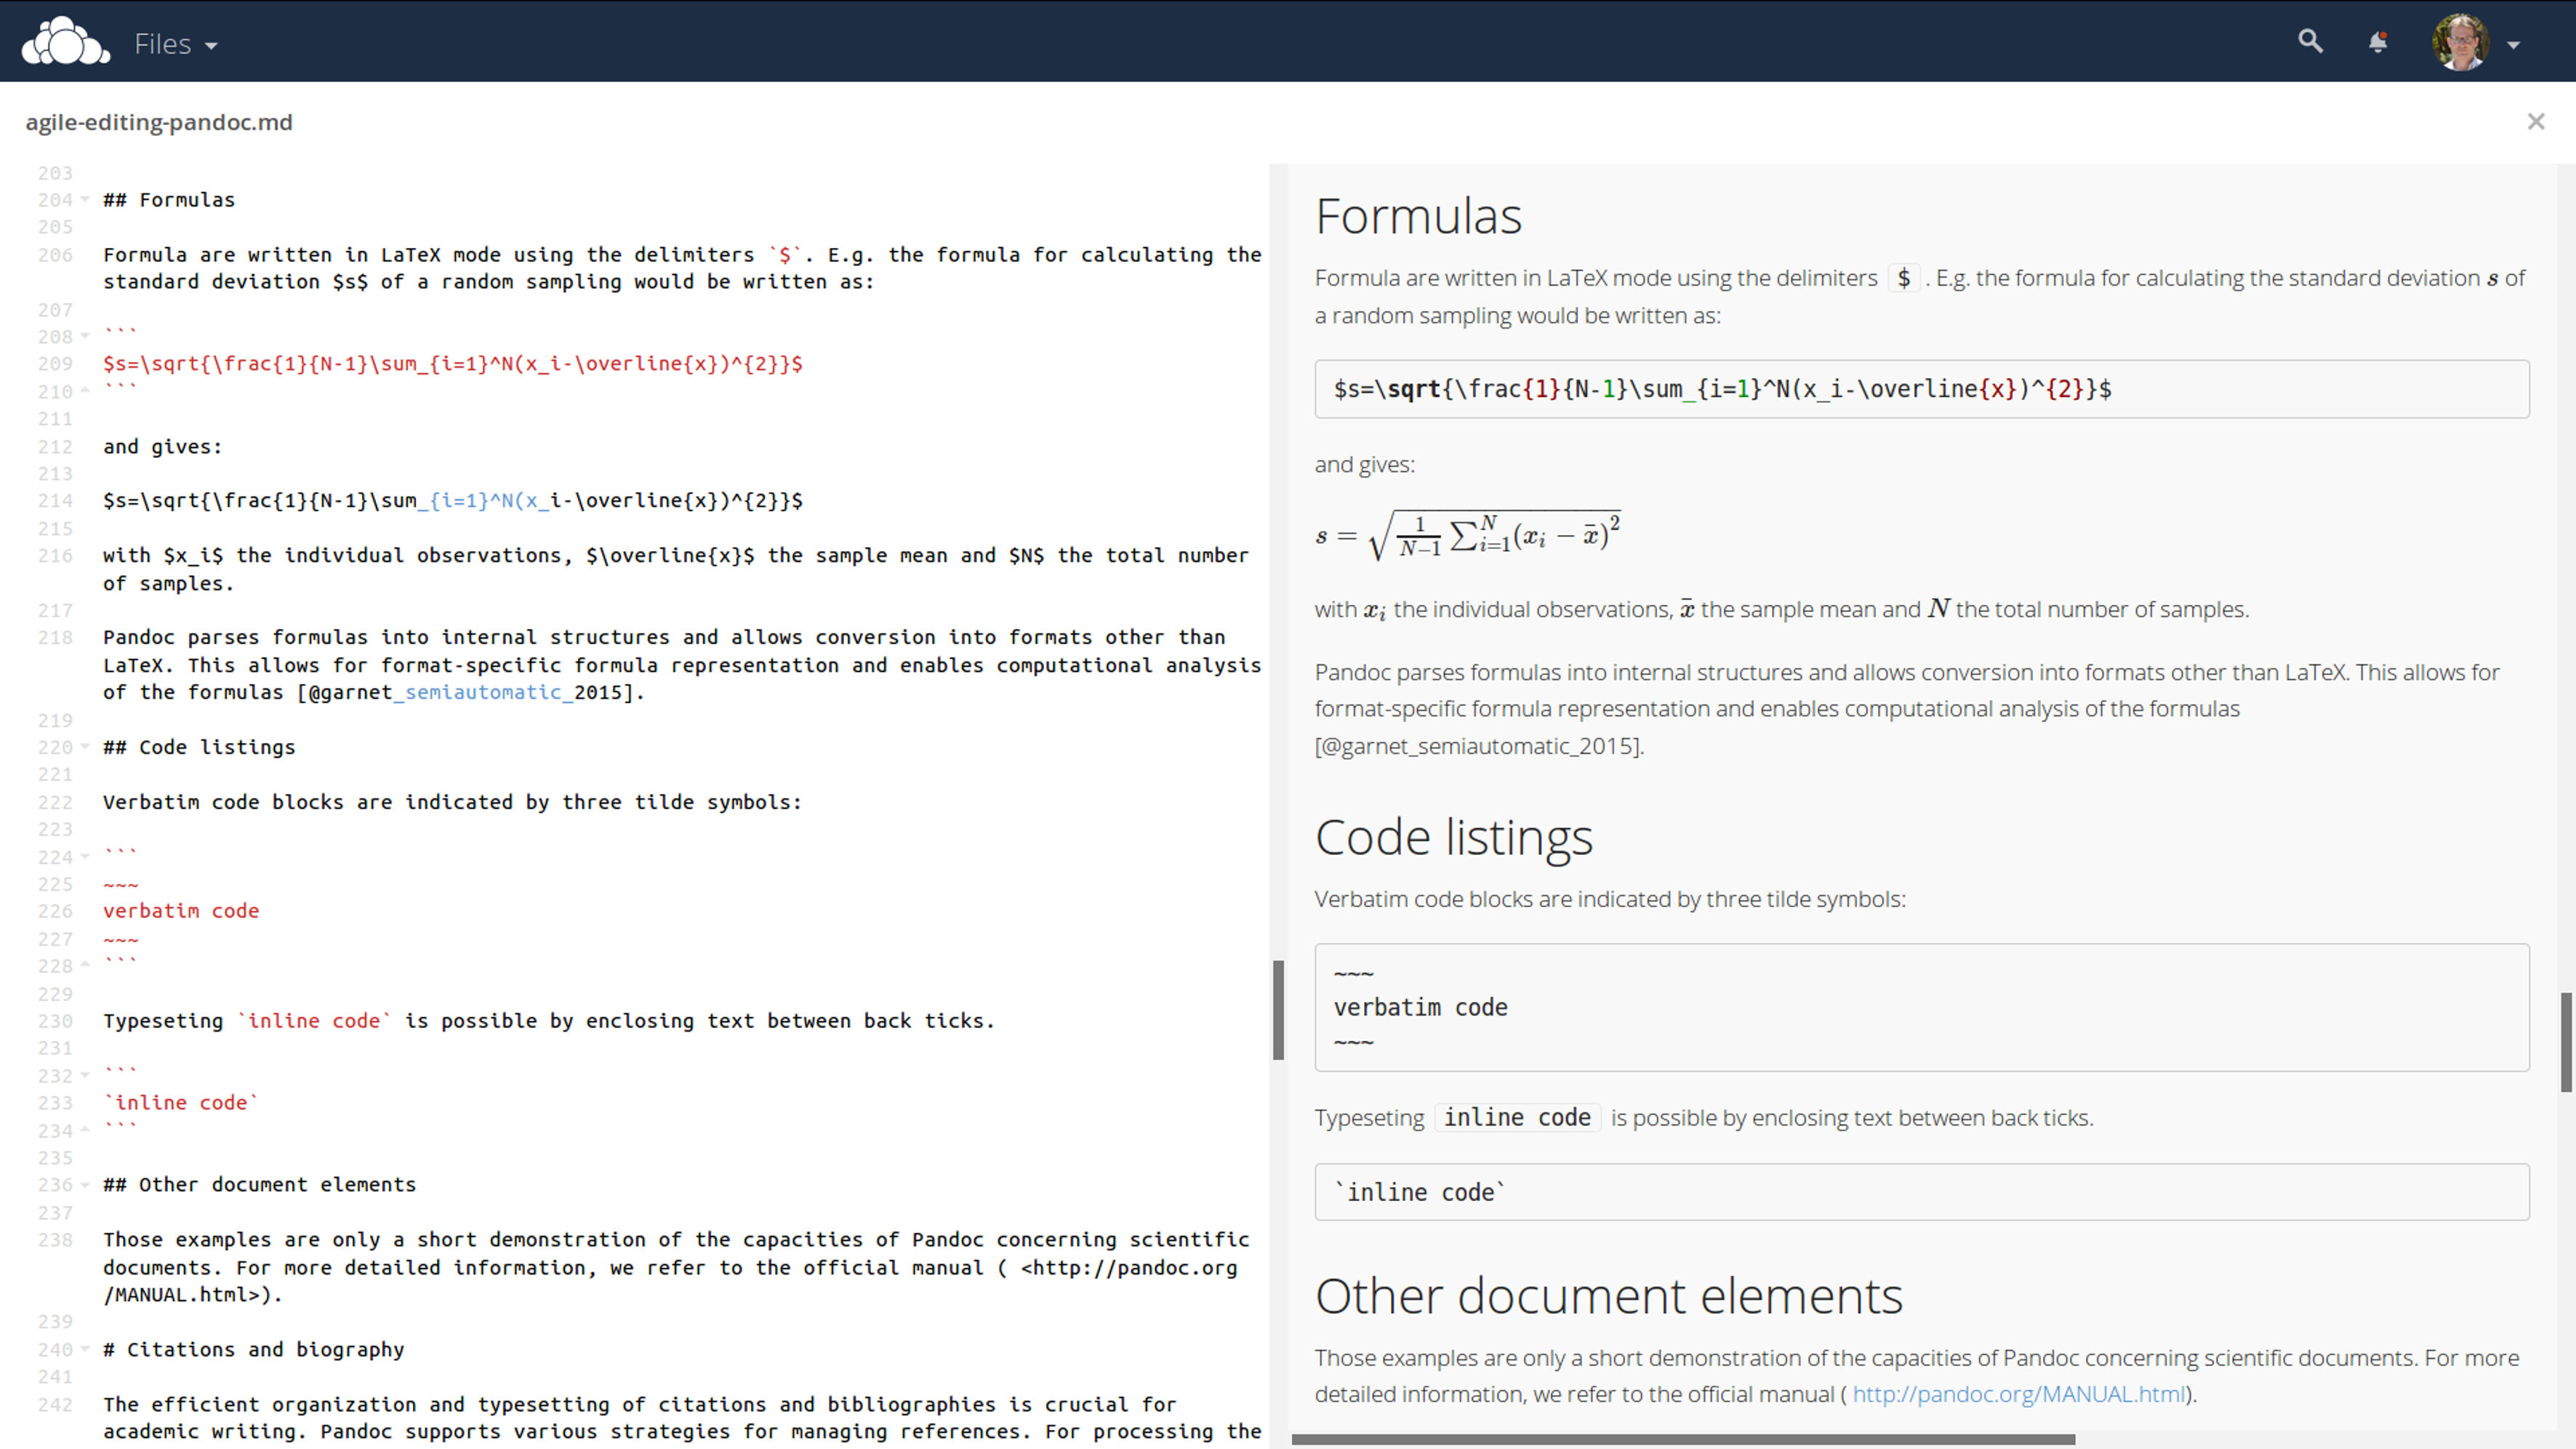 Direct online editing of this manuscript with live preview using the ownCloud Markdown Editor plugin by Robin Appelman.